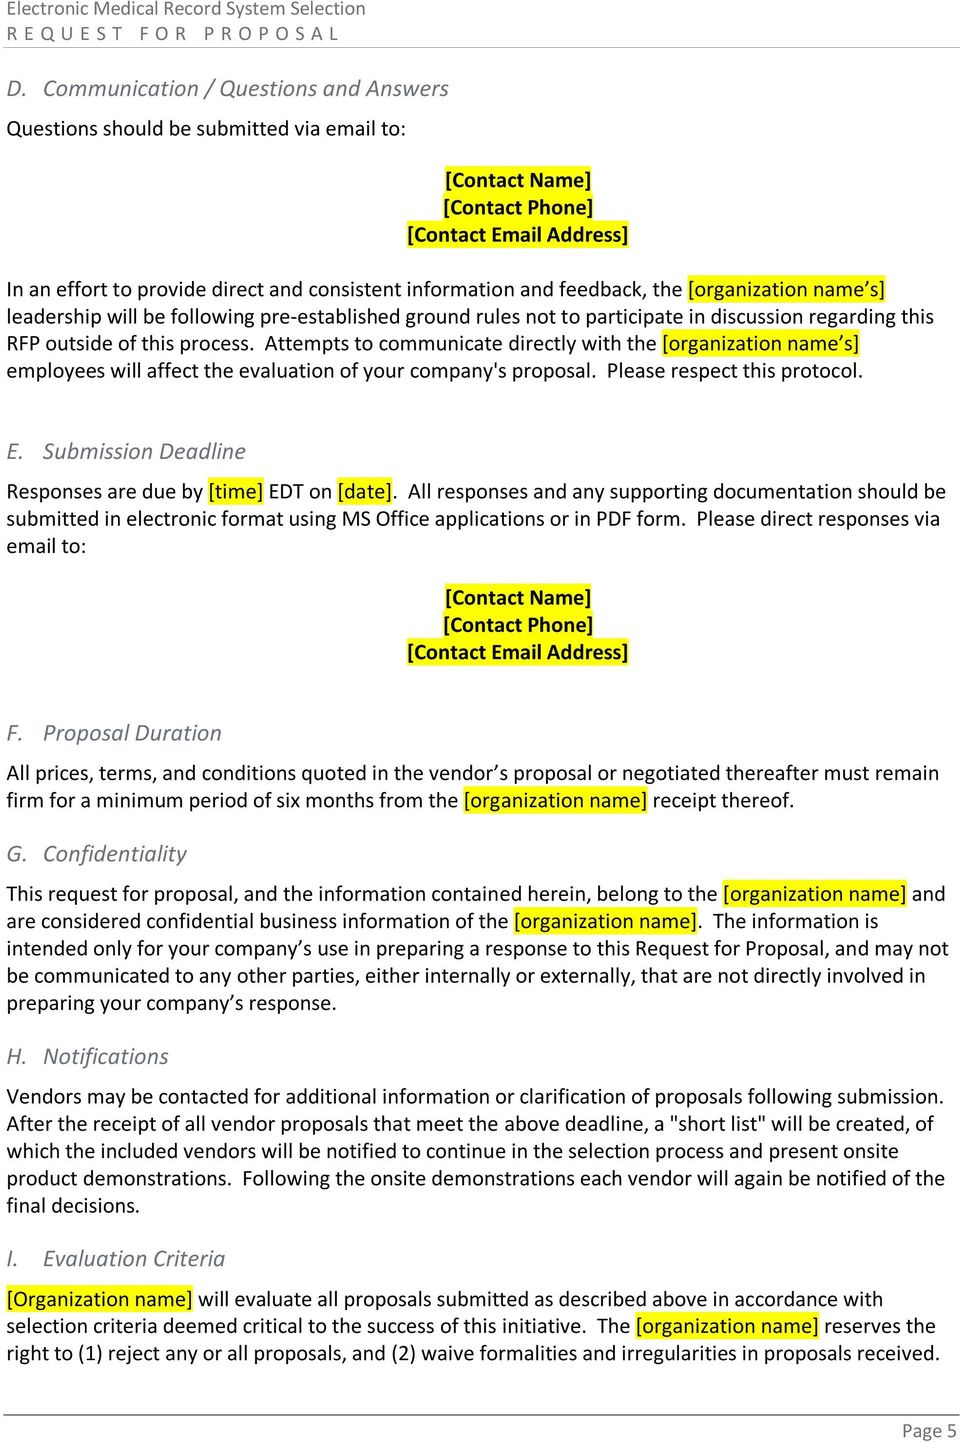 Electronic Medical Record (EMR) Request for Proposal (RFP) - PDF